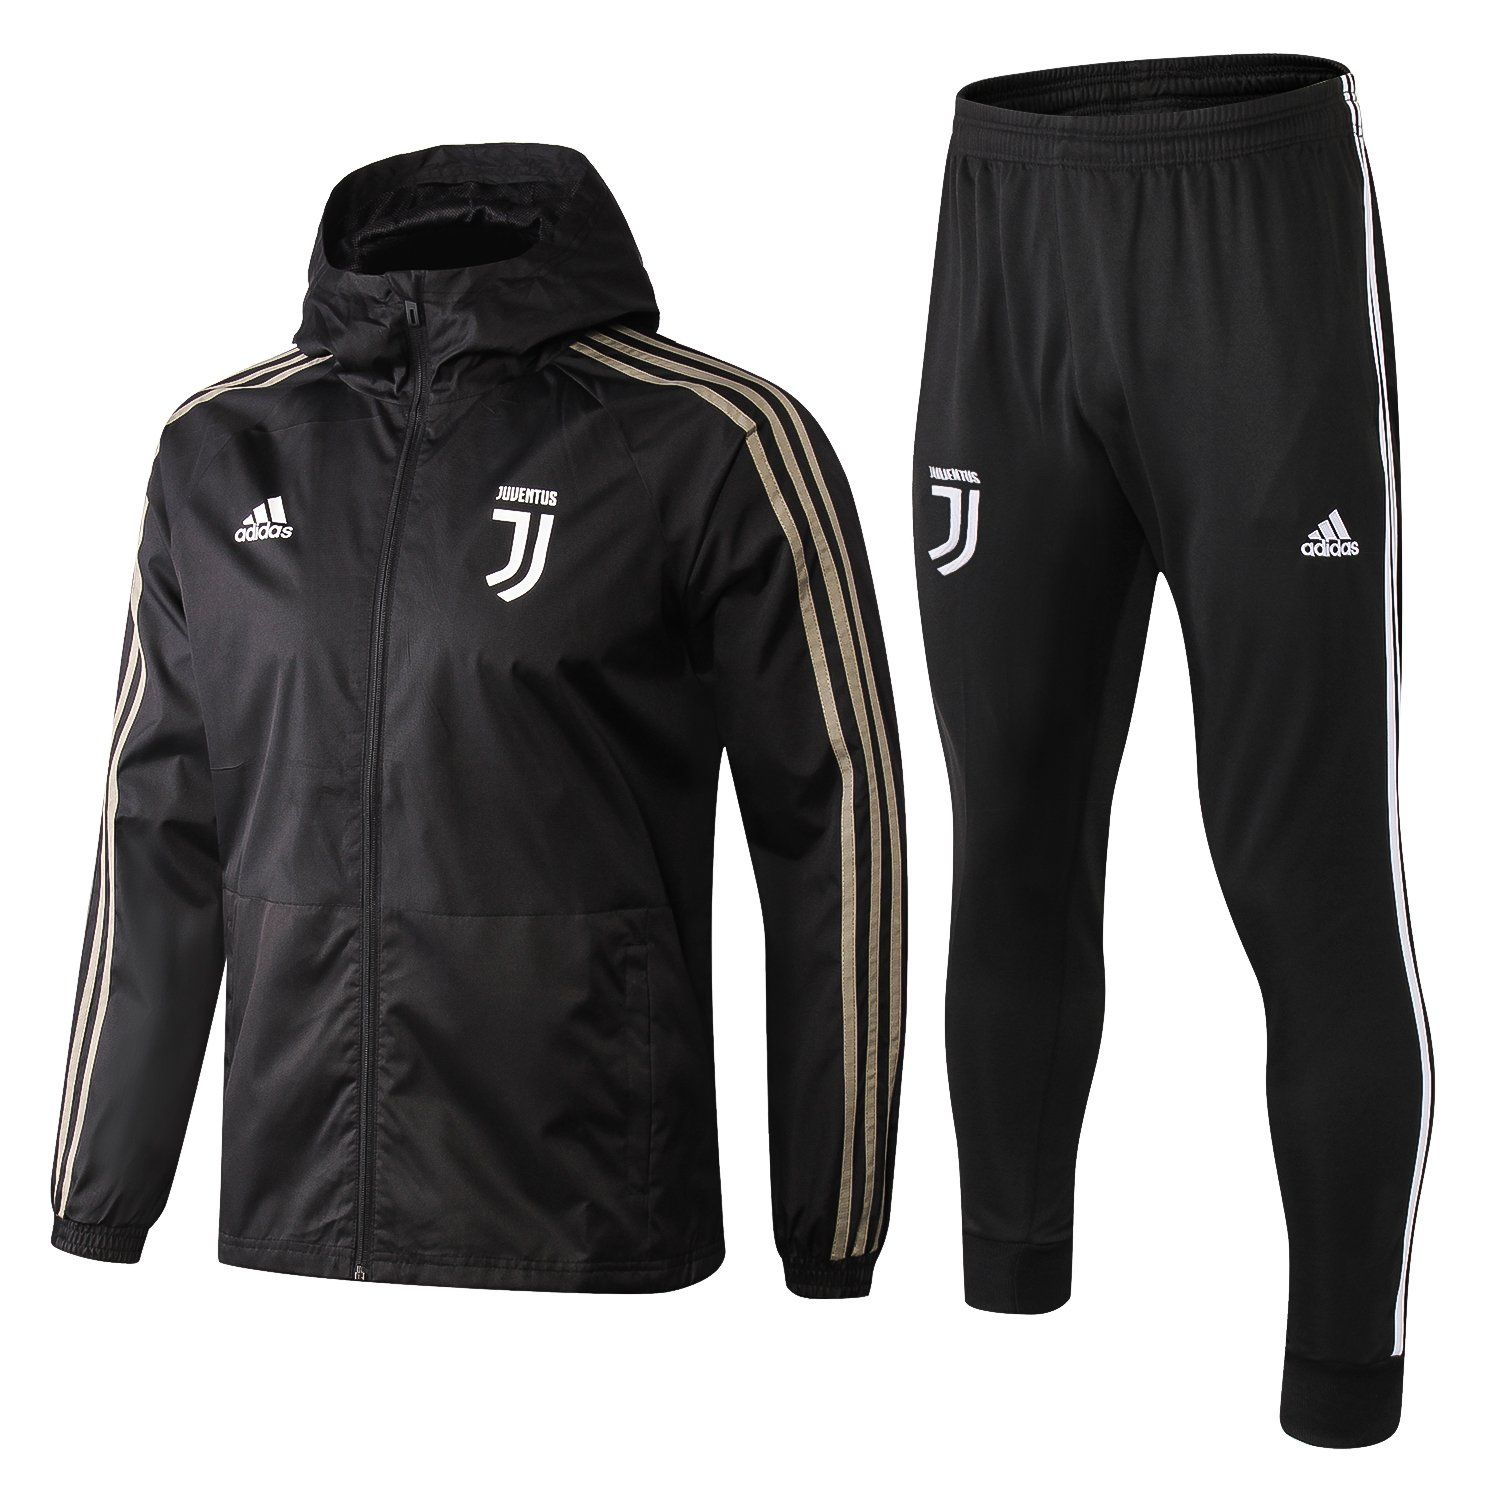 Juventus F.C. Juve FOOTBALL CLUB Adidas 2018 - 19 TRAINING Casual TOP  TRACKSUIT FÚTBOL CALCIO SOCCER CLUB FUSSBALL BNWT 097df89e179ba